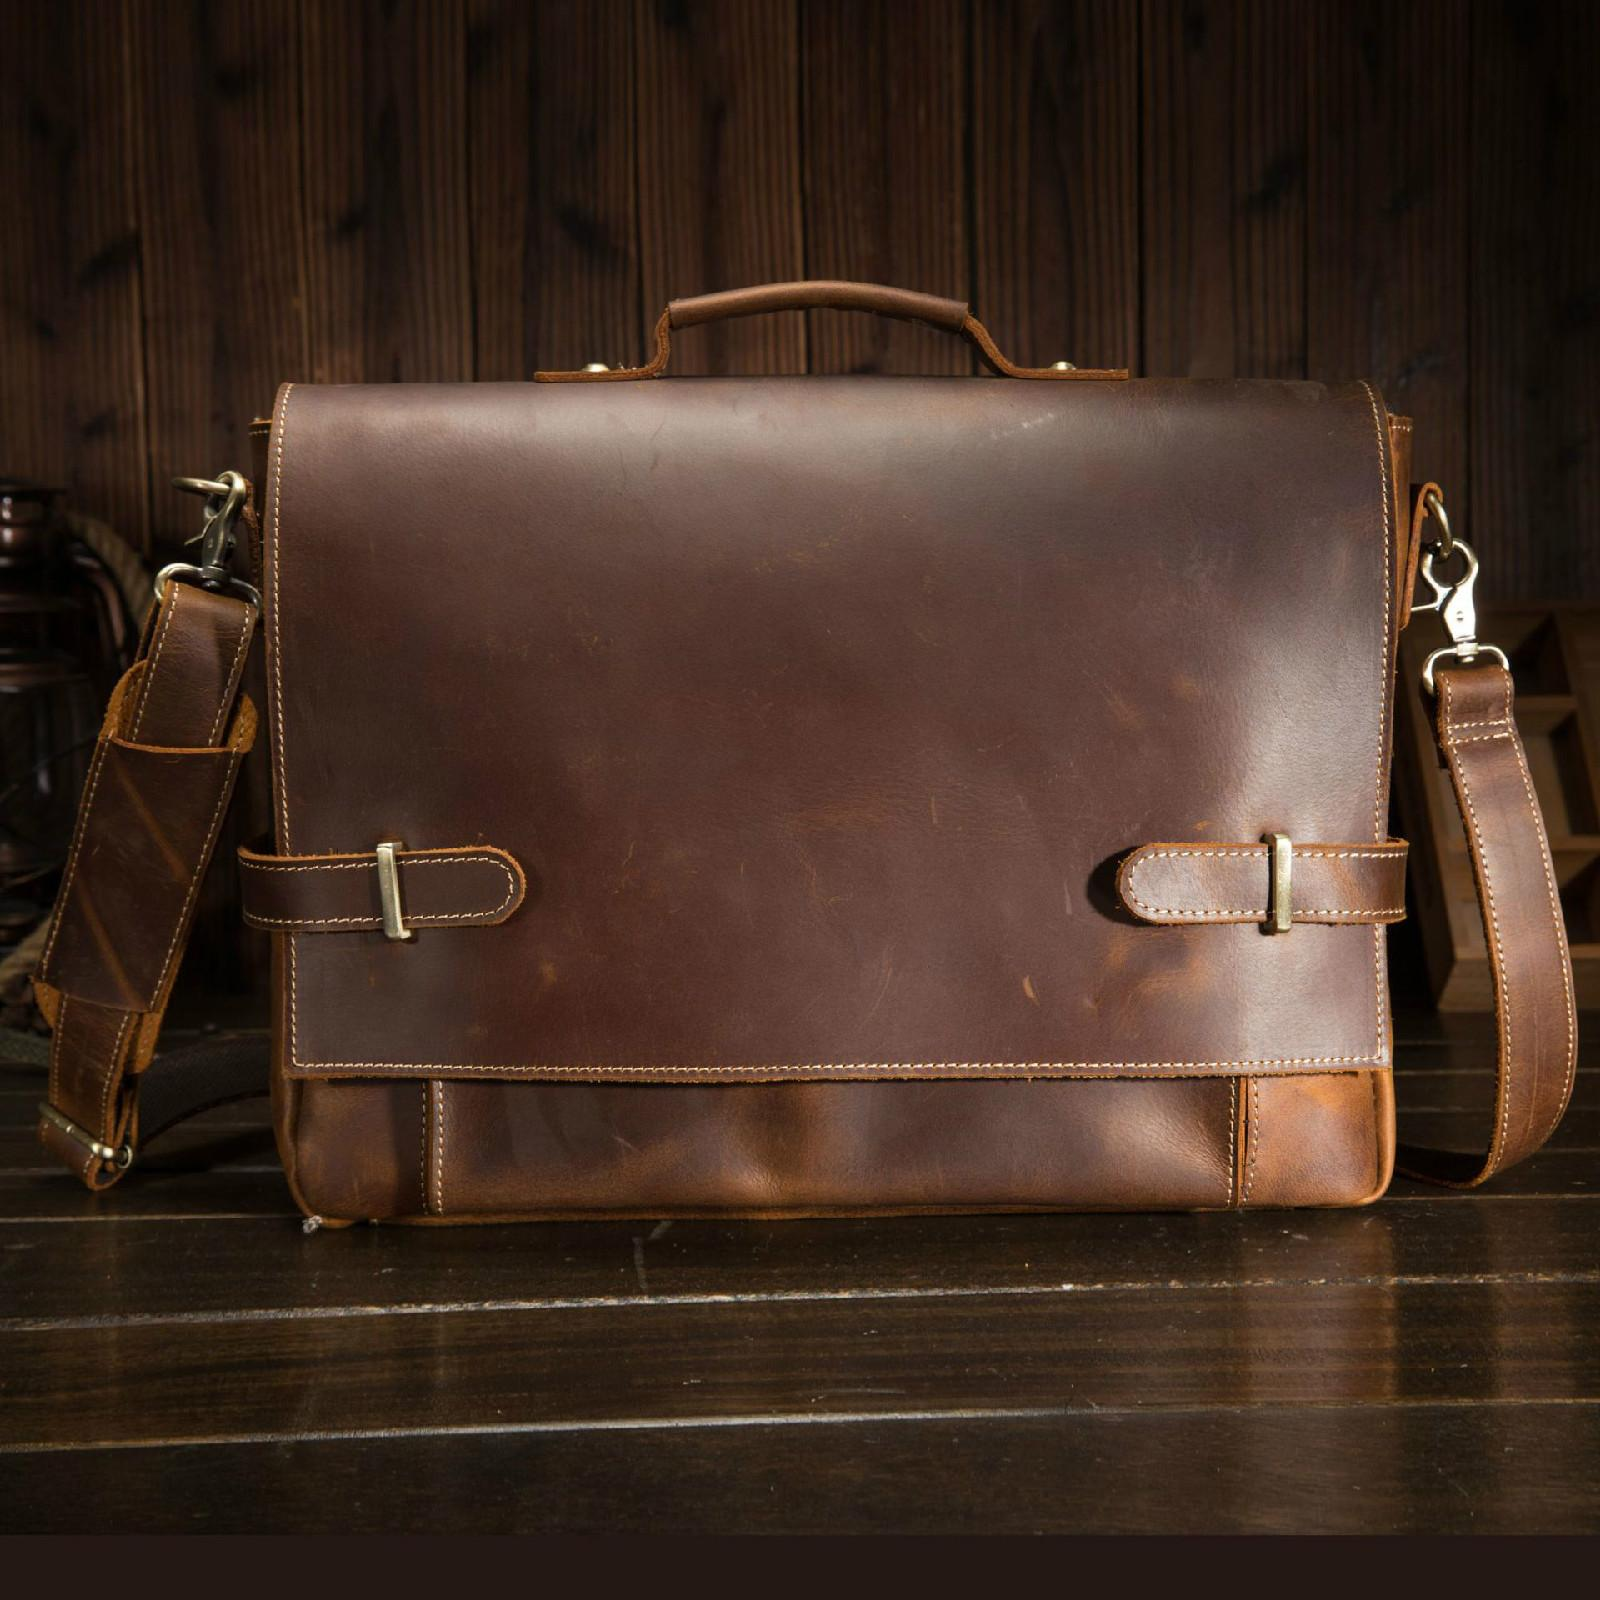 b9da83ee76f7 The First Layer Cowhide Men S Handbag Retro Crazy Horse Leather Briefcase  Casual Bag British Foreign Trade Leather Male 9090 Mens Duffle Bag Designer  ...